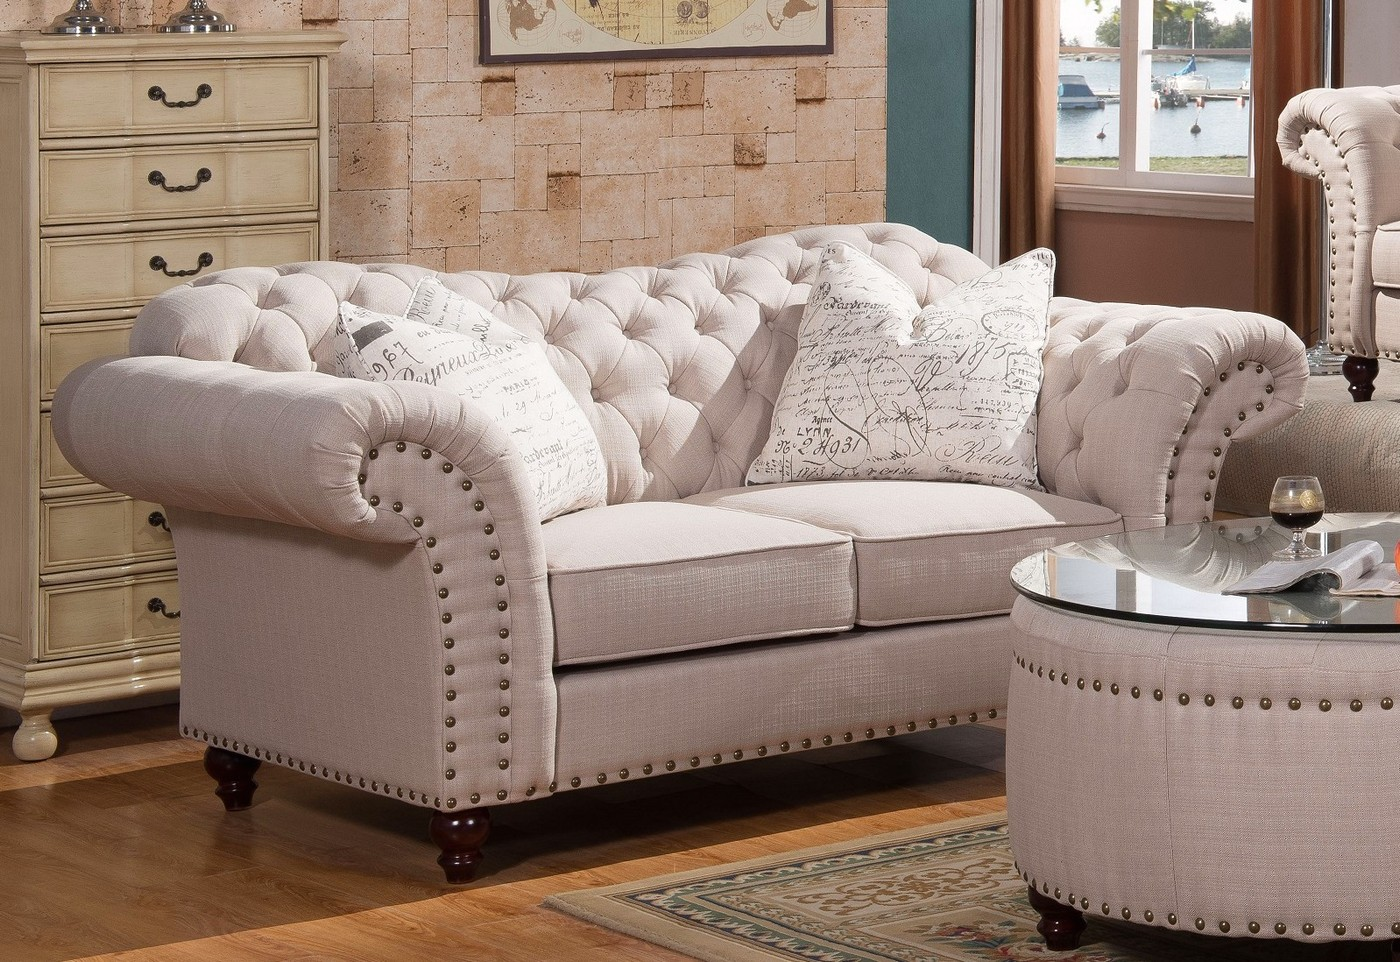 tufted button sofa raymour and flanigan sofas walton classic sweetheart loveseat